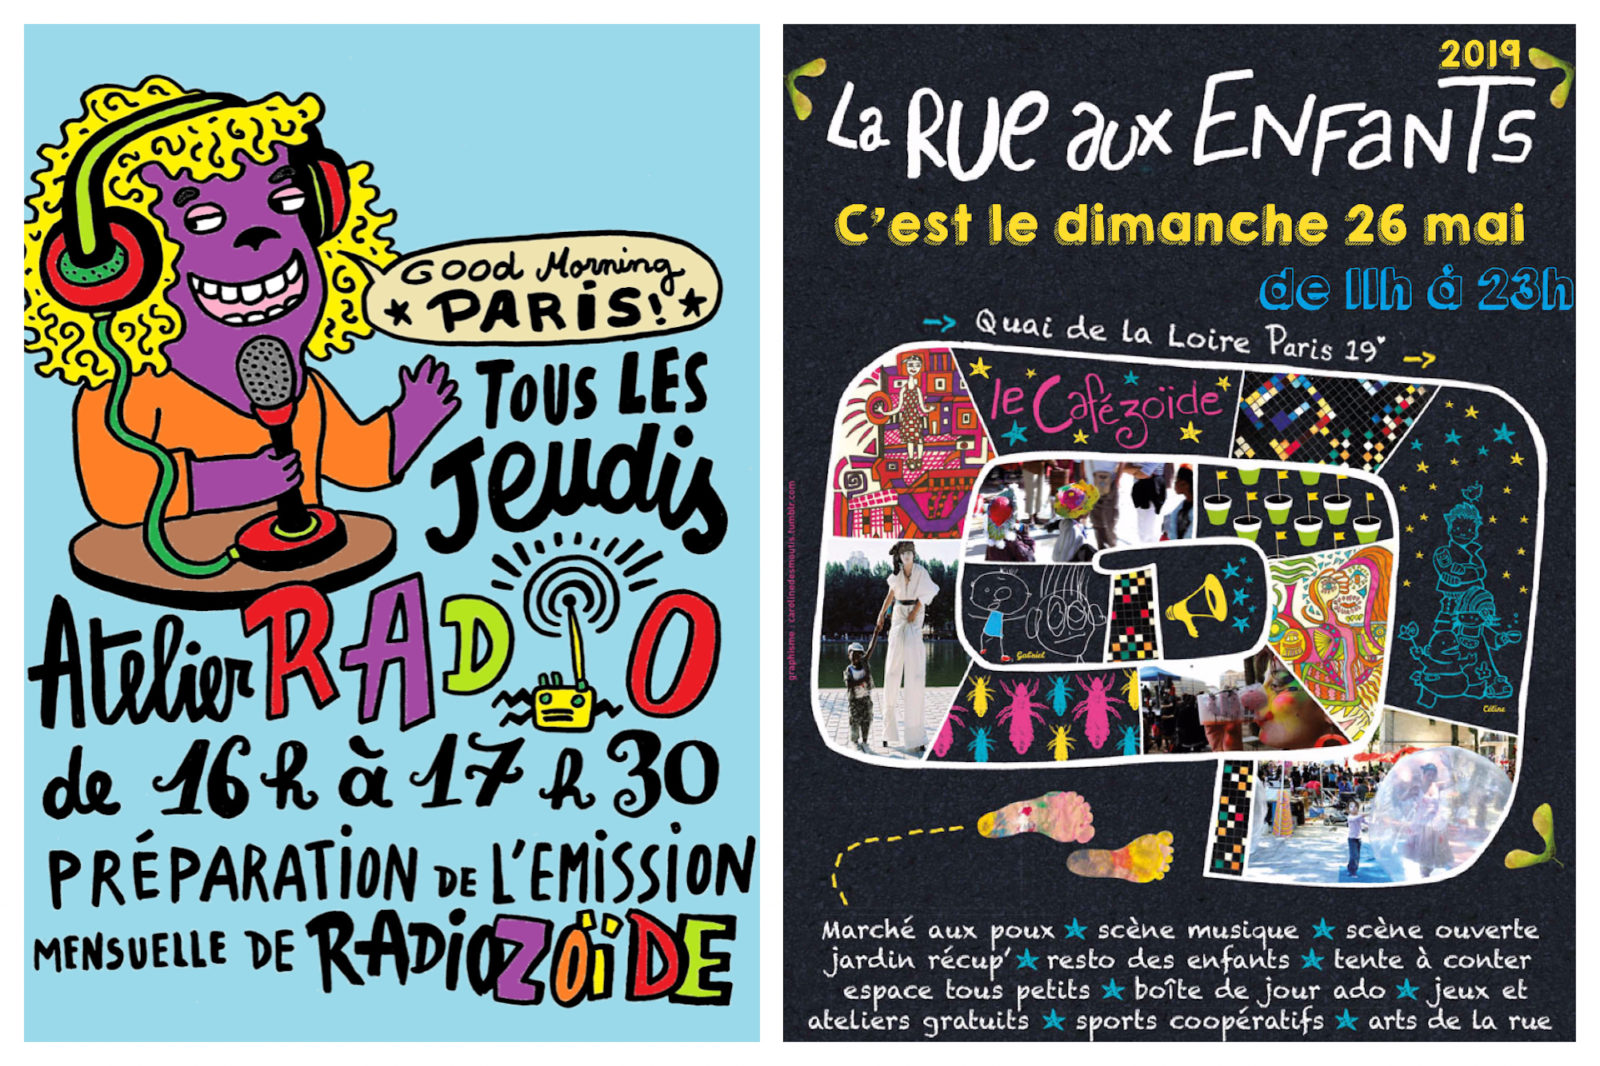 Posters for Cafézoïde, a cafe offering lots of kid-friendly activities in Paris like radio workshops on Thursdays and games on Sundays.